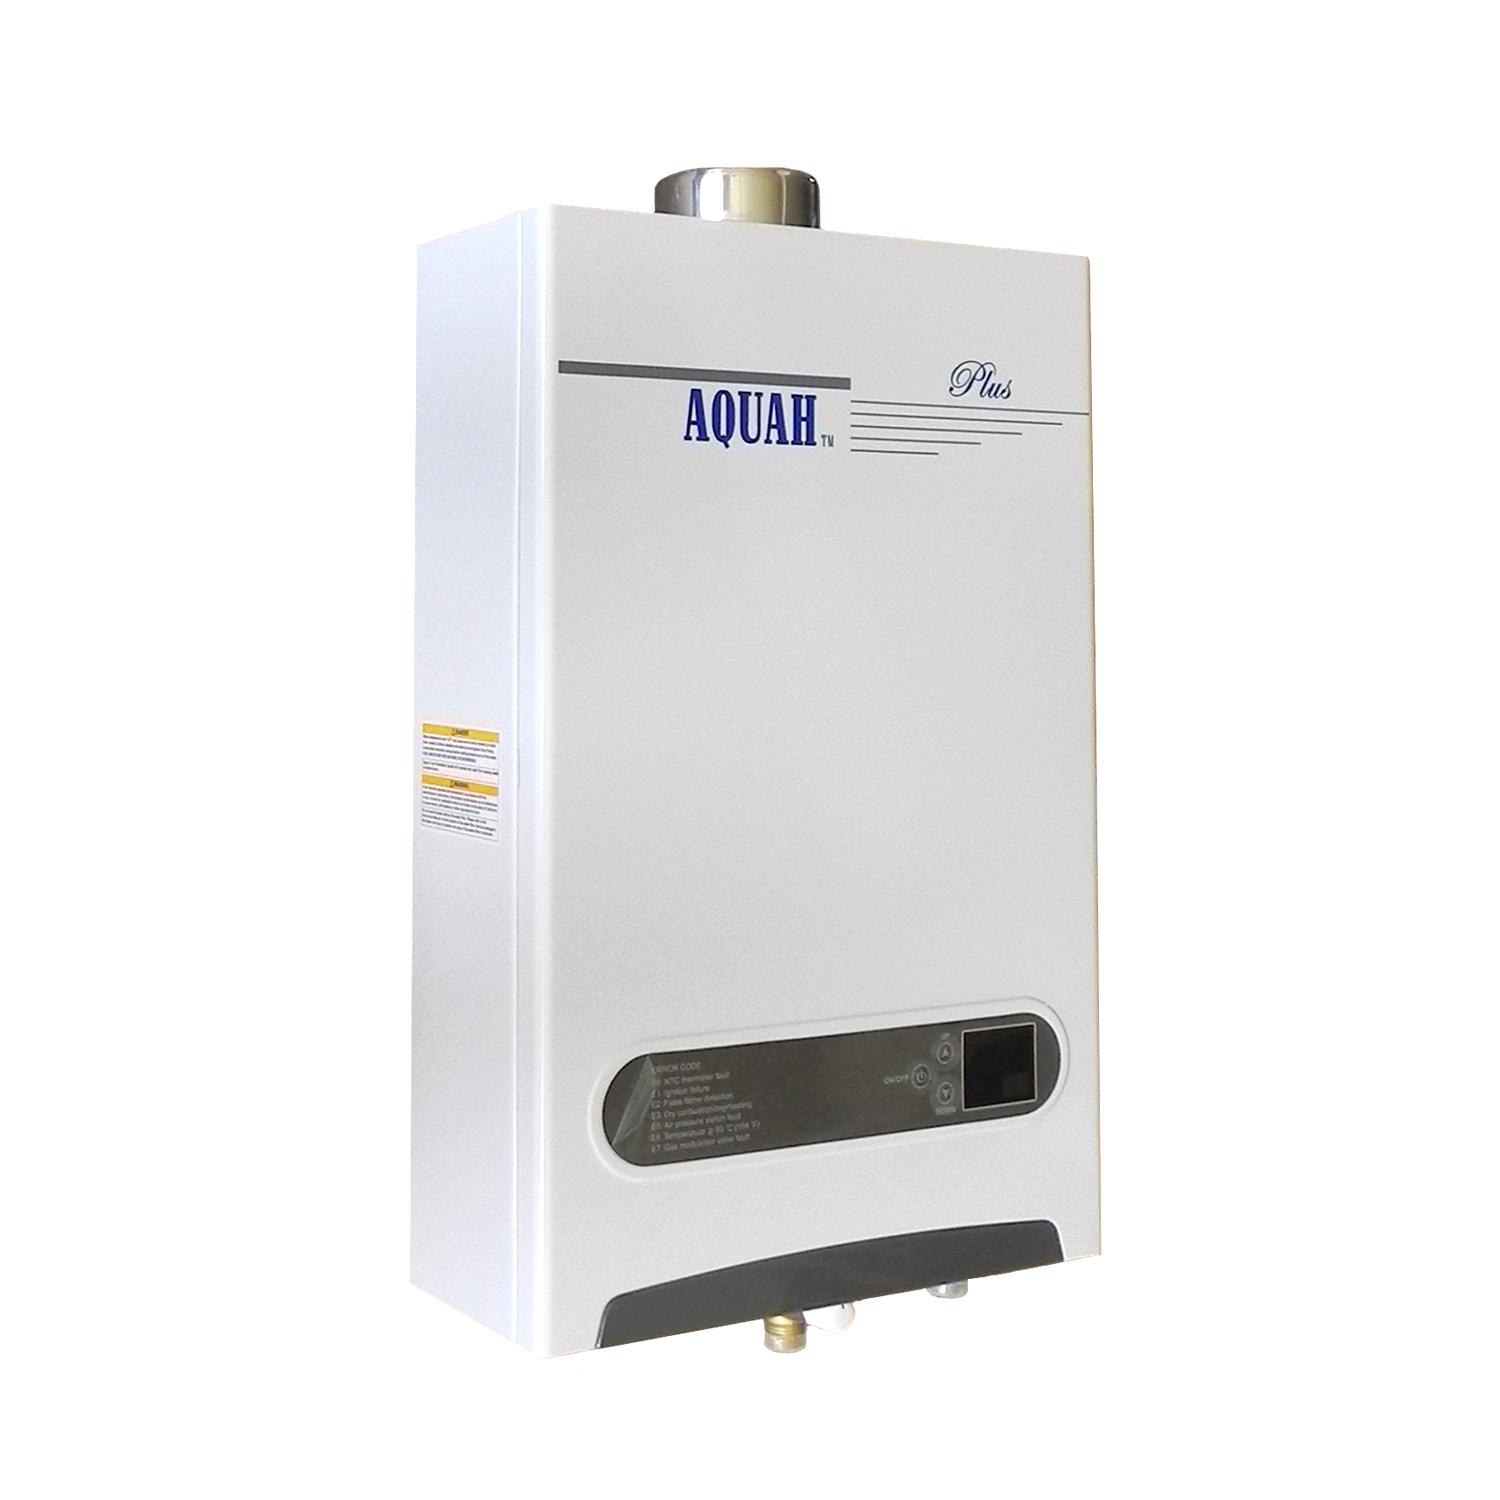 Aquah Plus Direct Vent Propane Gas Tankless Gas Water Heater Aquah Store